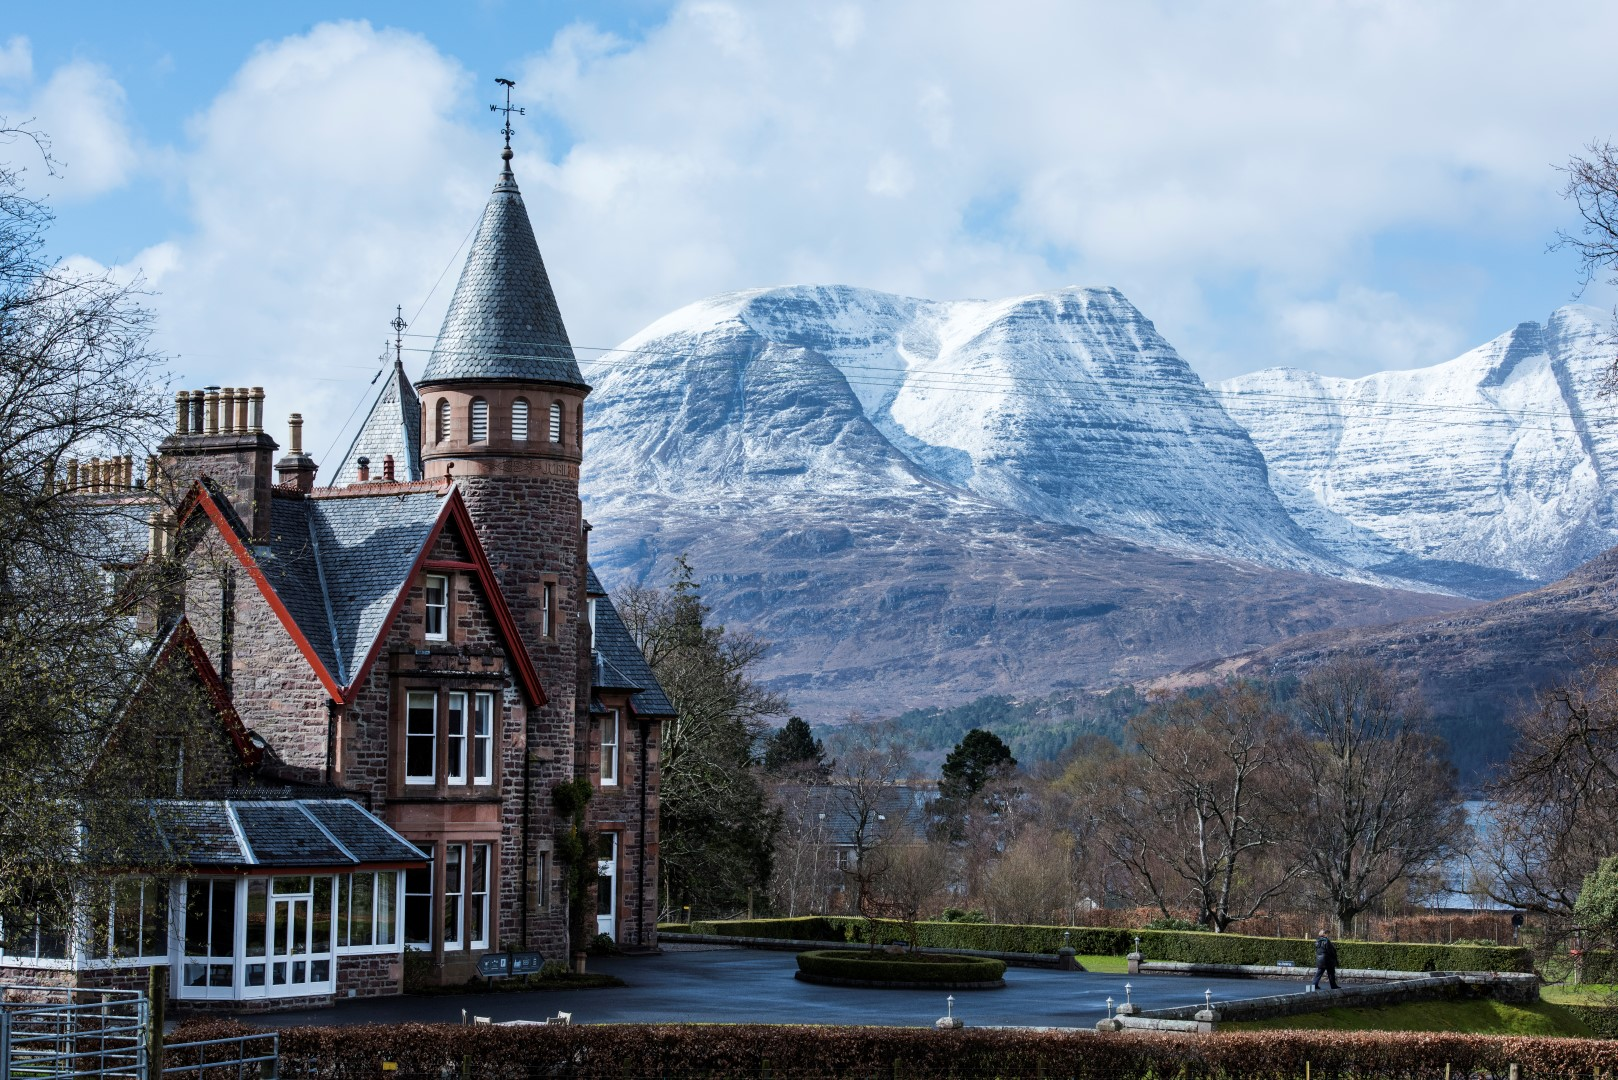 The Torridon Hotel in the Scottish Highlands